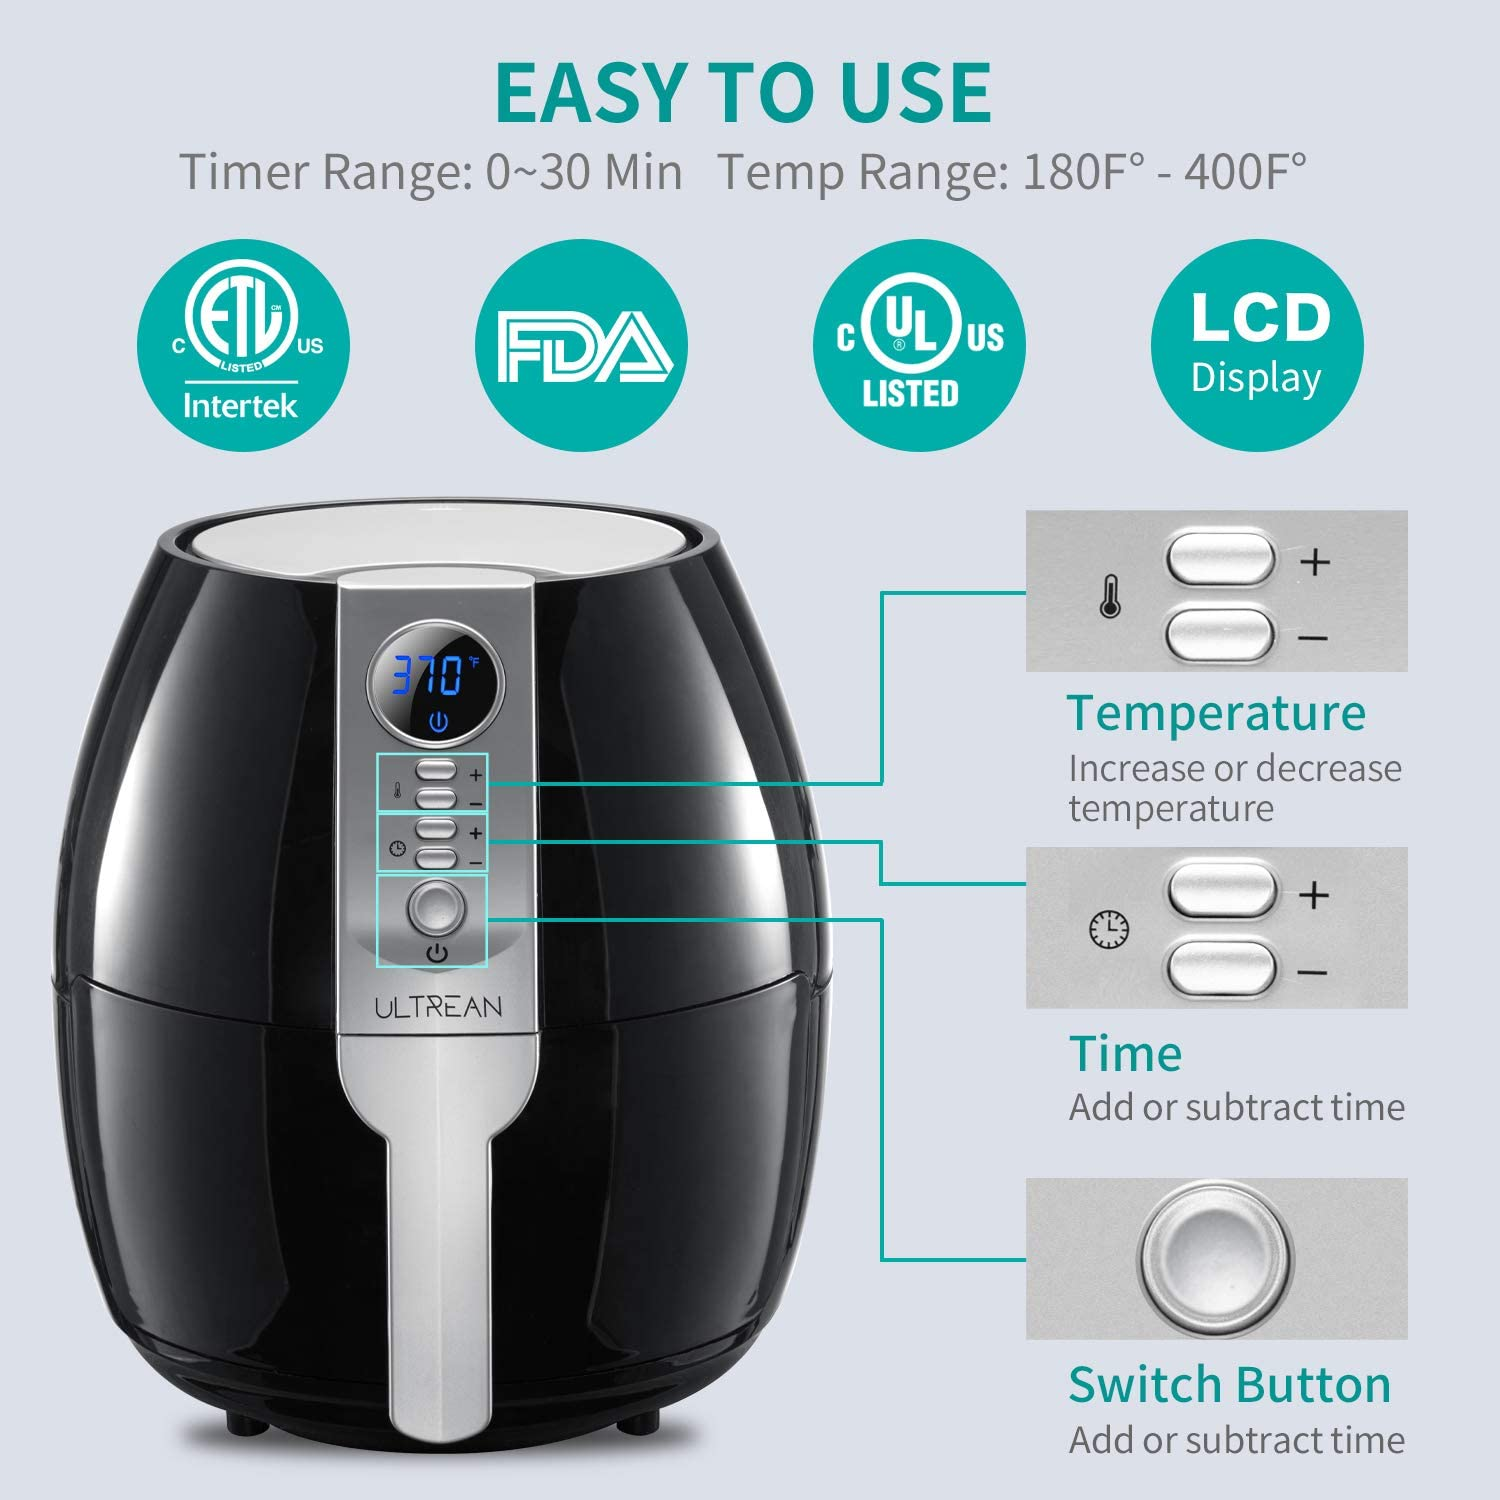 Ultrean Air Fryer 4.2 Quart - Easy to use - Temp, Time, Switch button